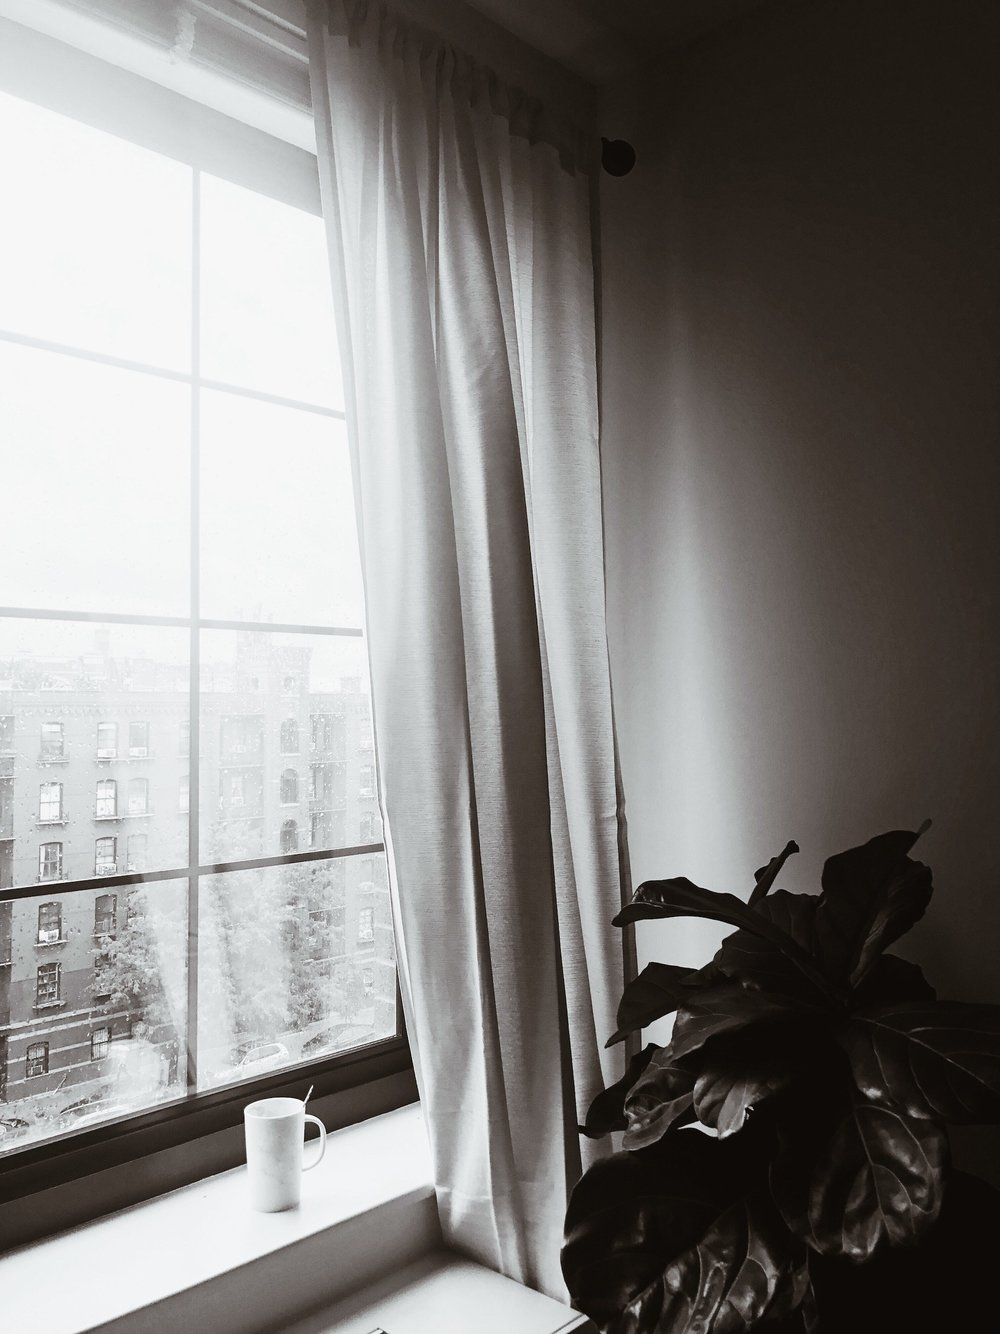 black-and-white-window-with-rain1.jpg